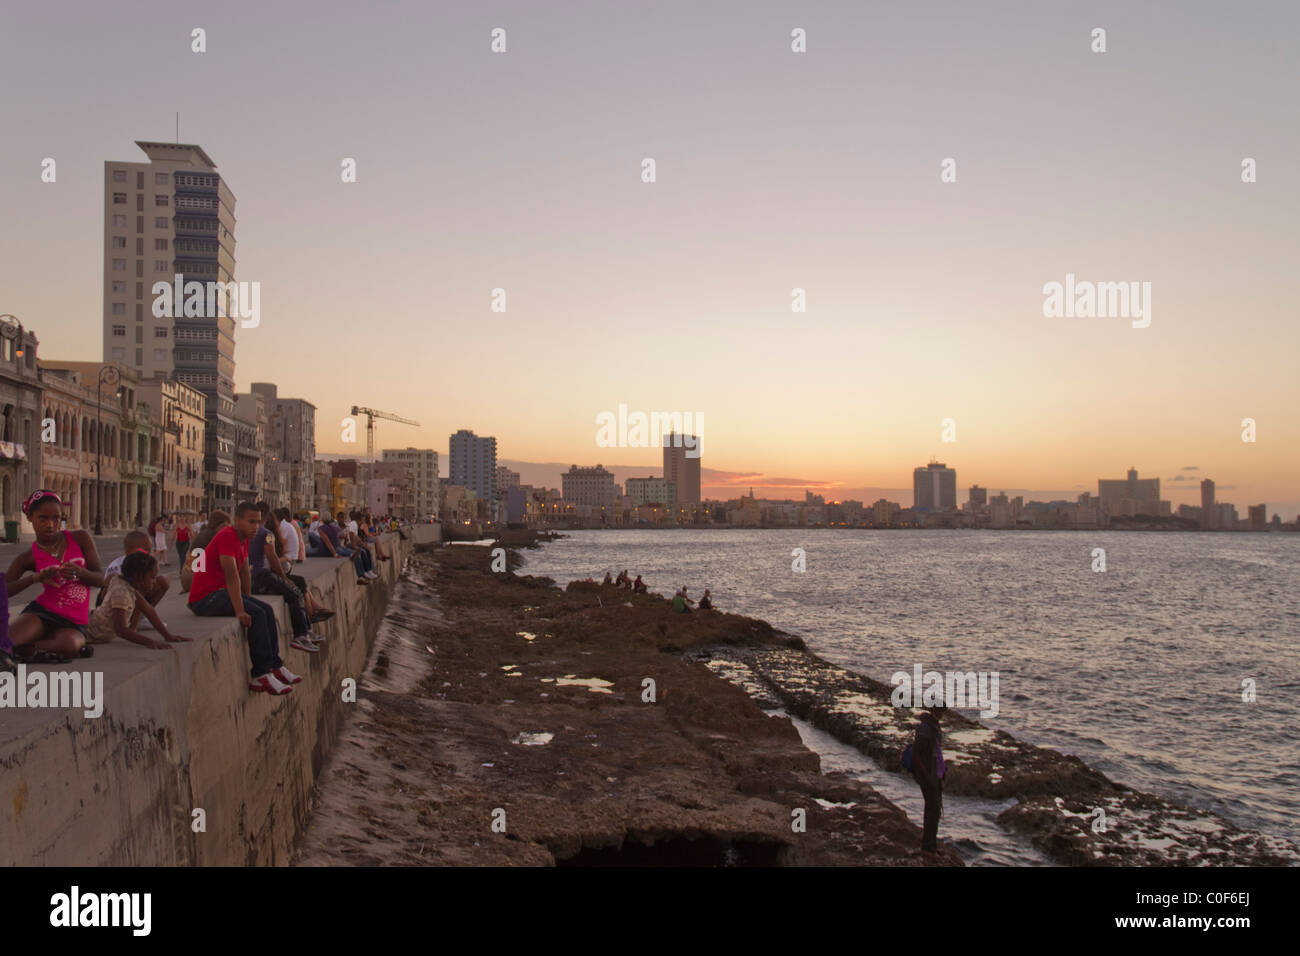 Malecon Promenade at sunset, Havanna Vieja, Cuba Stock Foto